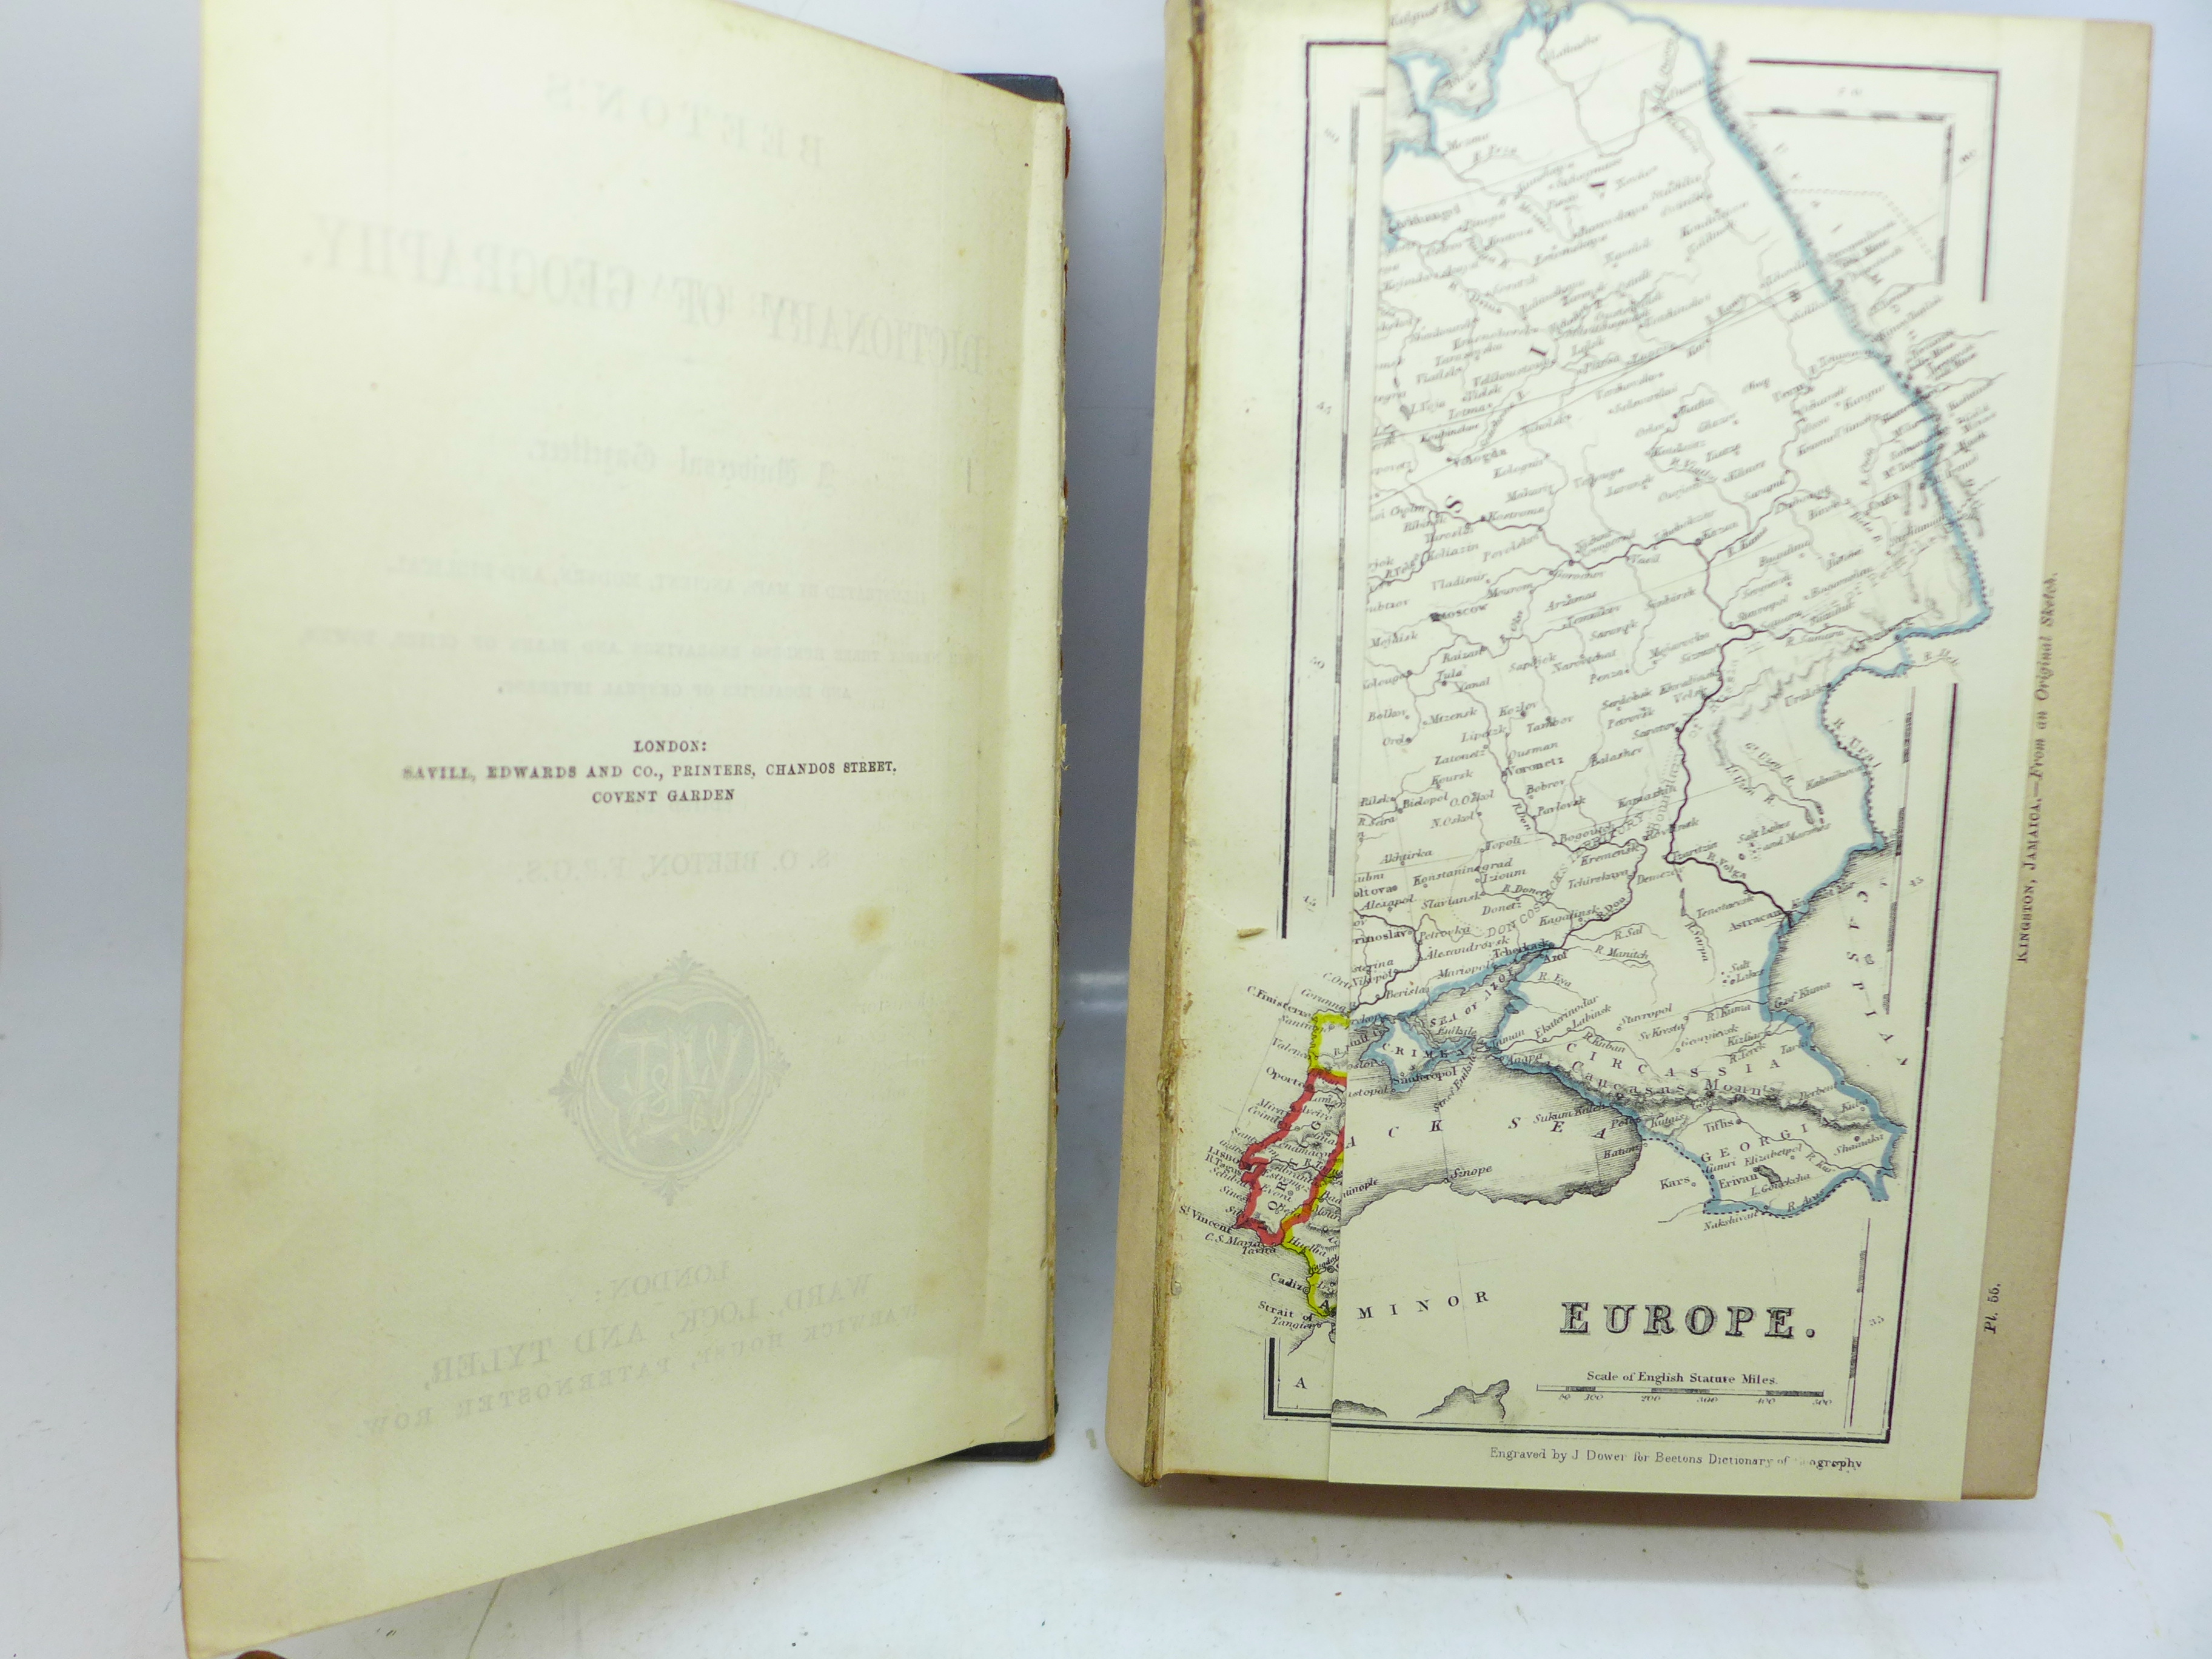 Two volumes, Beeton's Dictionary of Geography, printed by Savill, Edwards & Co., circa 1869, with - Image 4 of 8